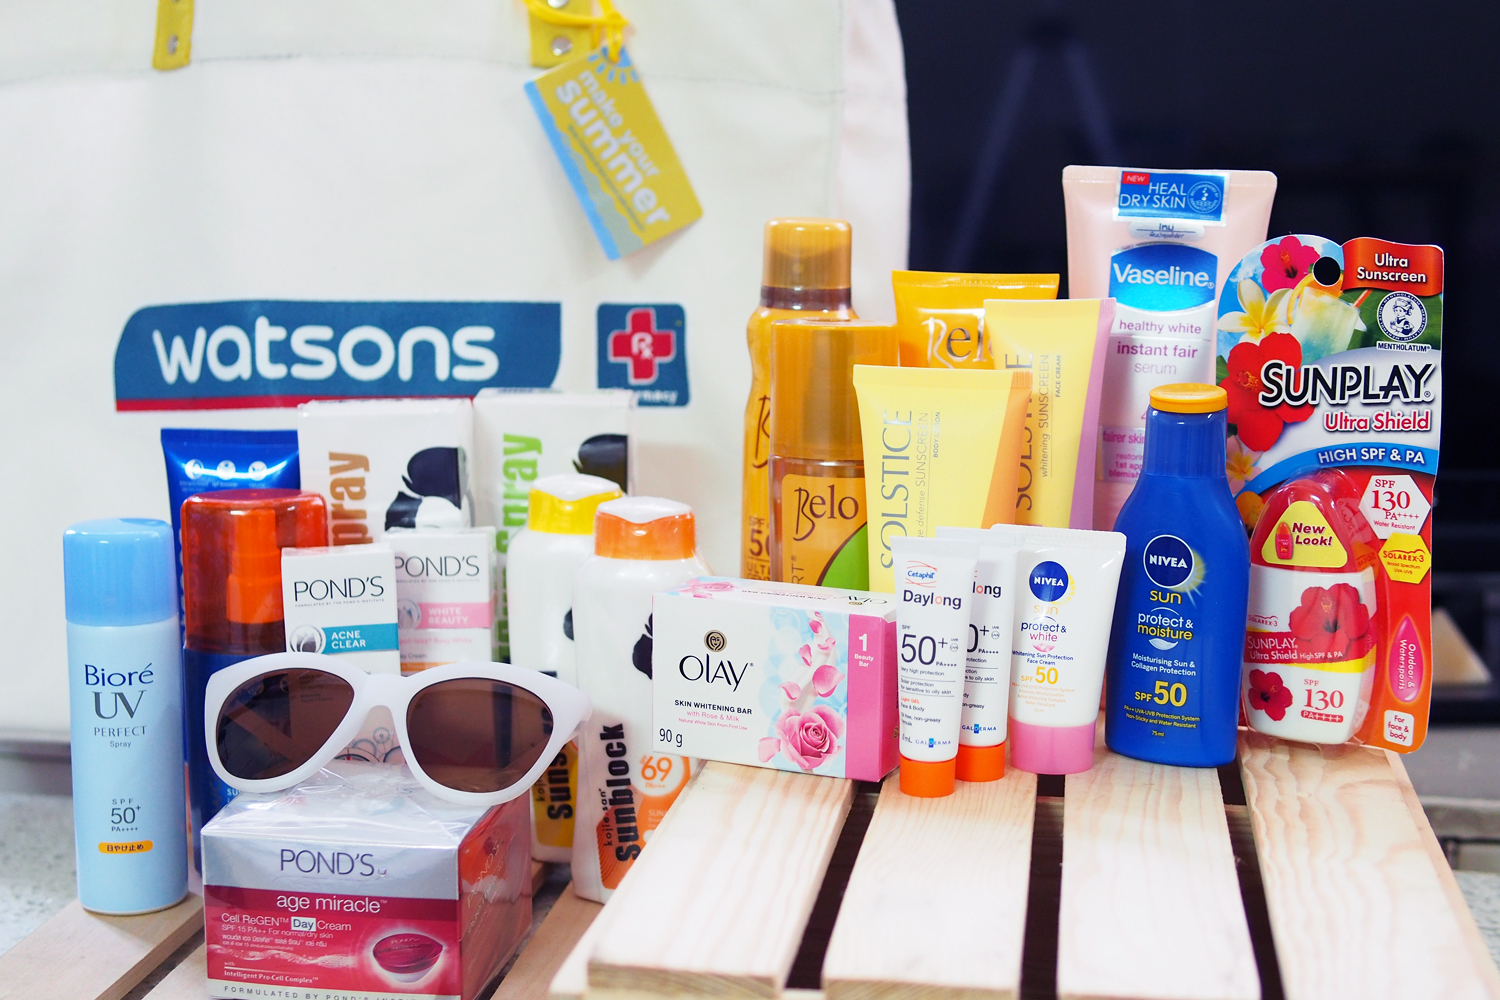 Top 18 Spf Products From Watsons To Keep You Literally Covered This Nivea Moisture Sun Lotion 50 100 M Summer